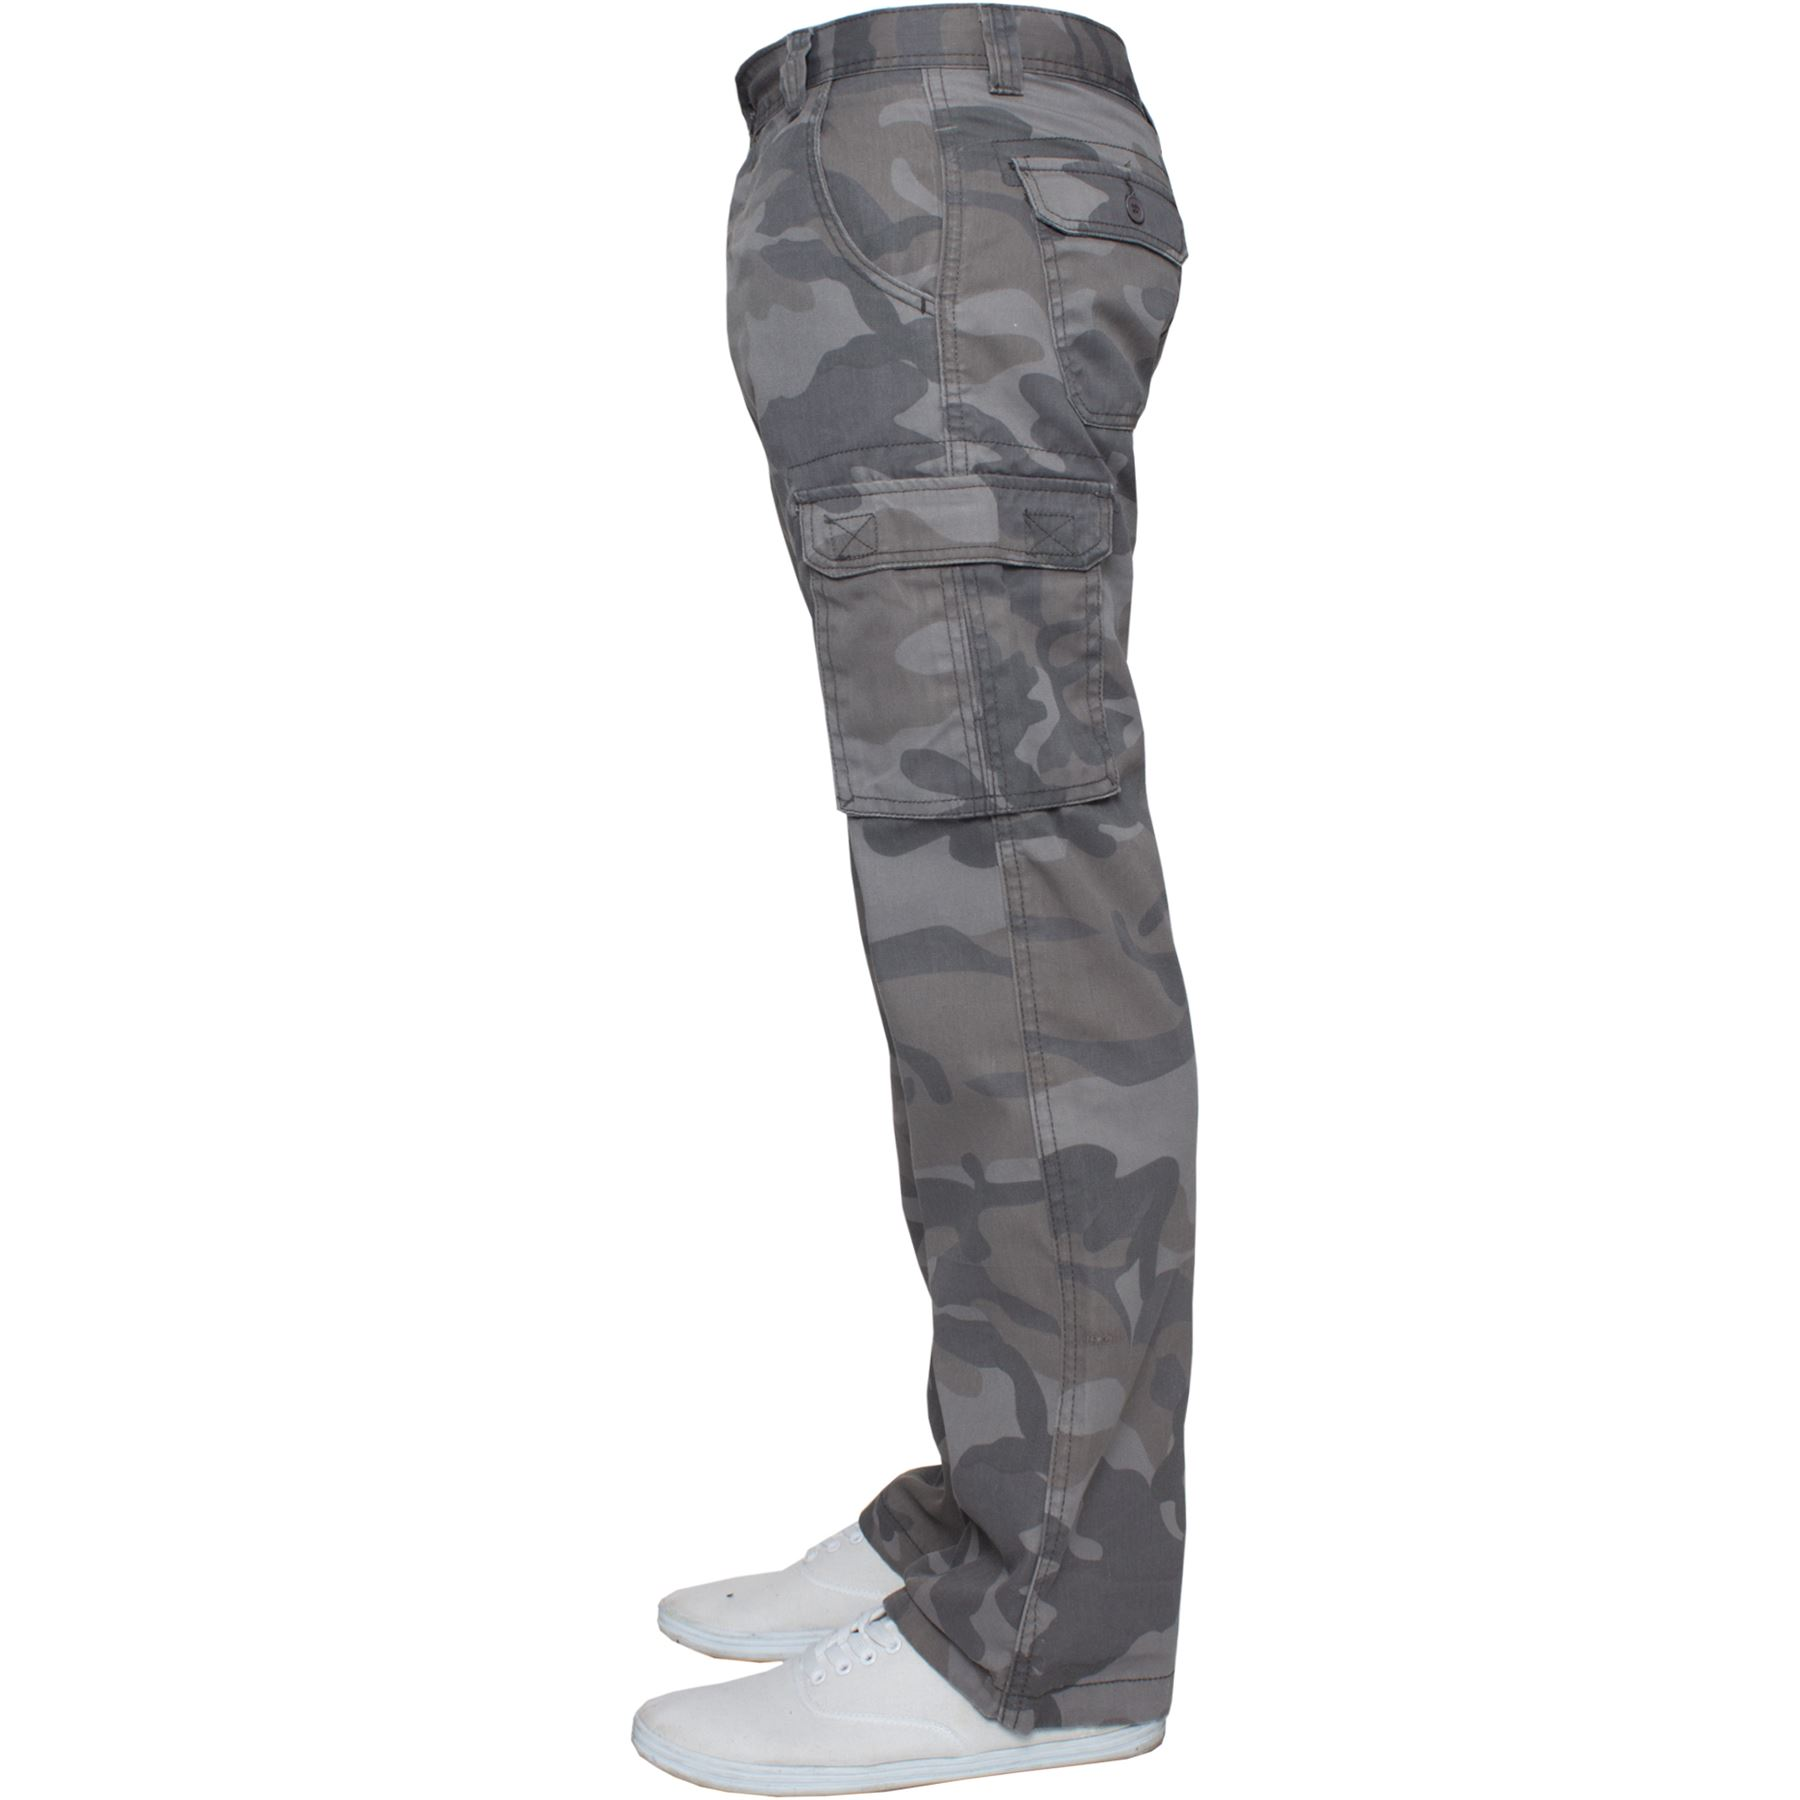 Kruze-Mens-Military-Combat-Trousers-Camouflage-Cargo-Camo-Army-Casual-Work-Pants thumbnail 11